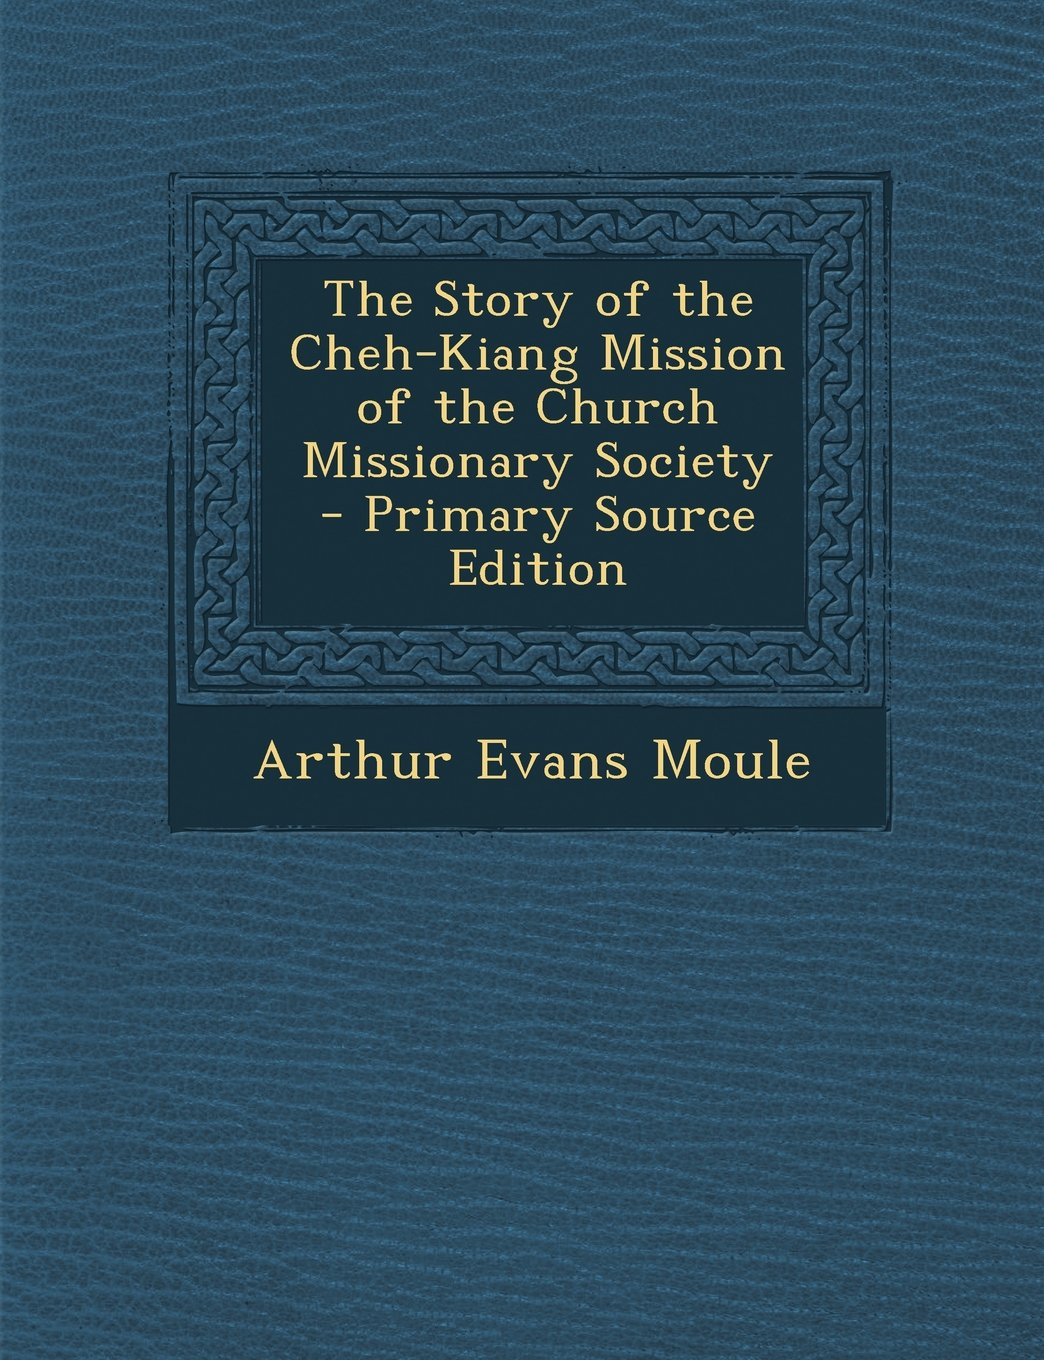 Read Online The Story of the Cheh-Kiang Mission of the Church Missionary Society - Primary Source Edition pdf epub